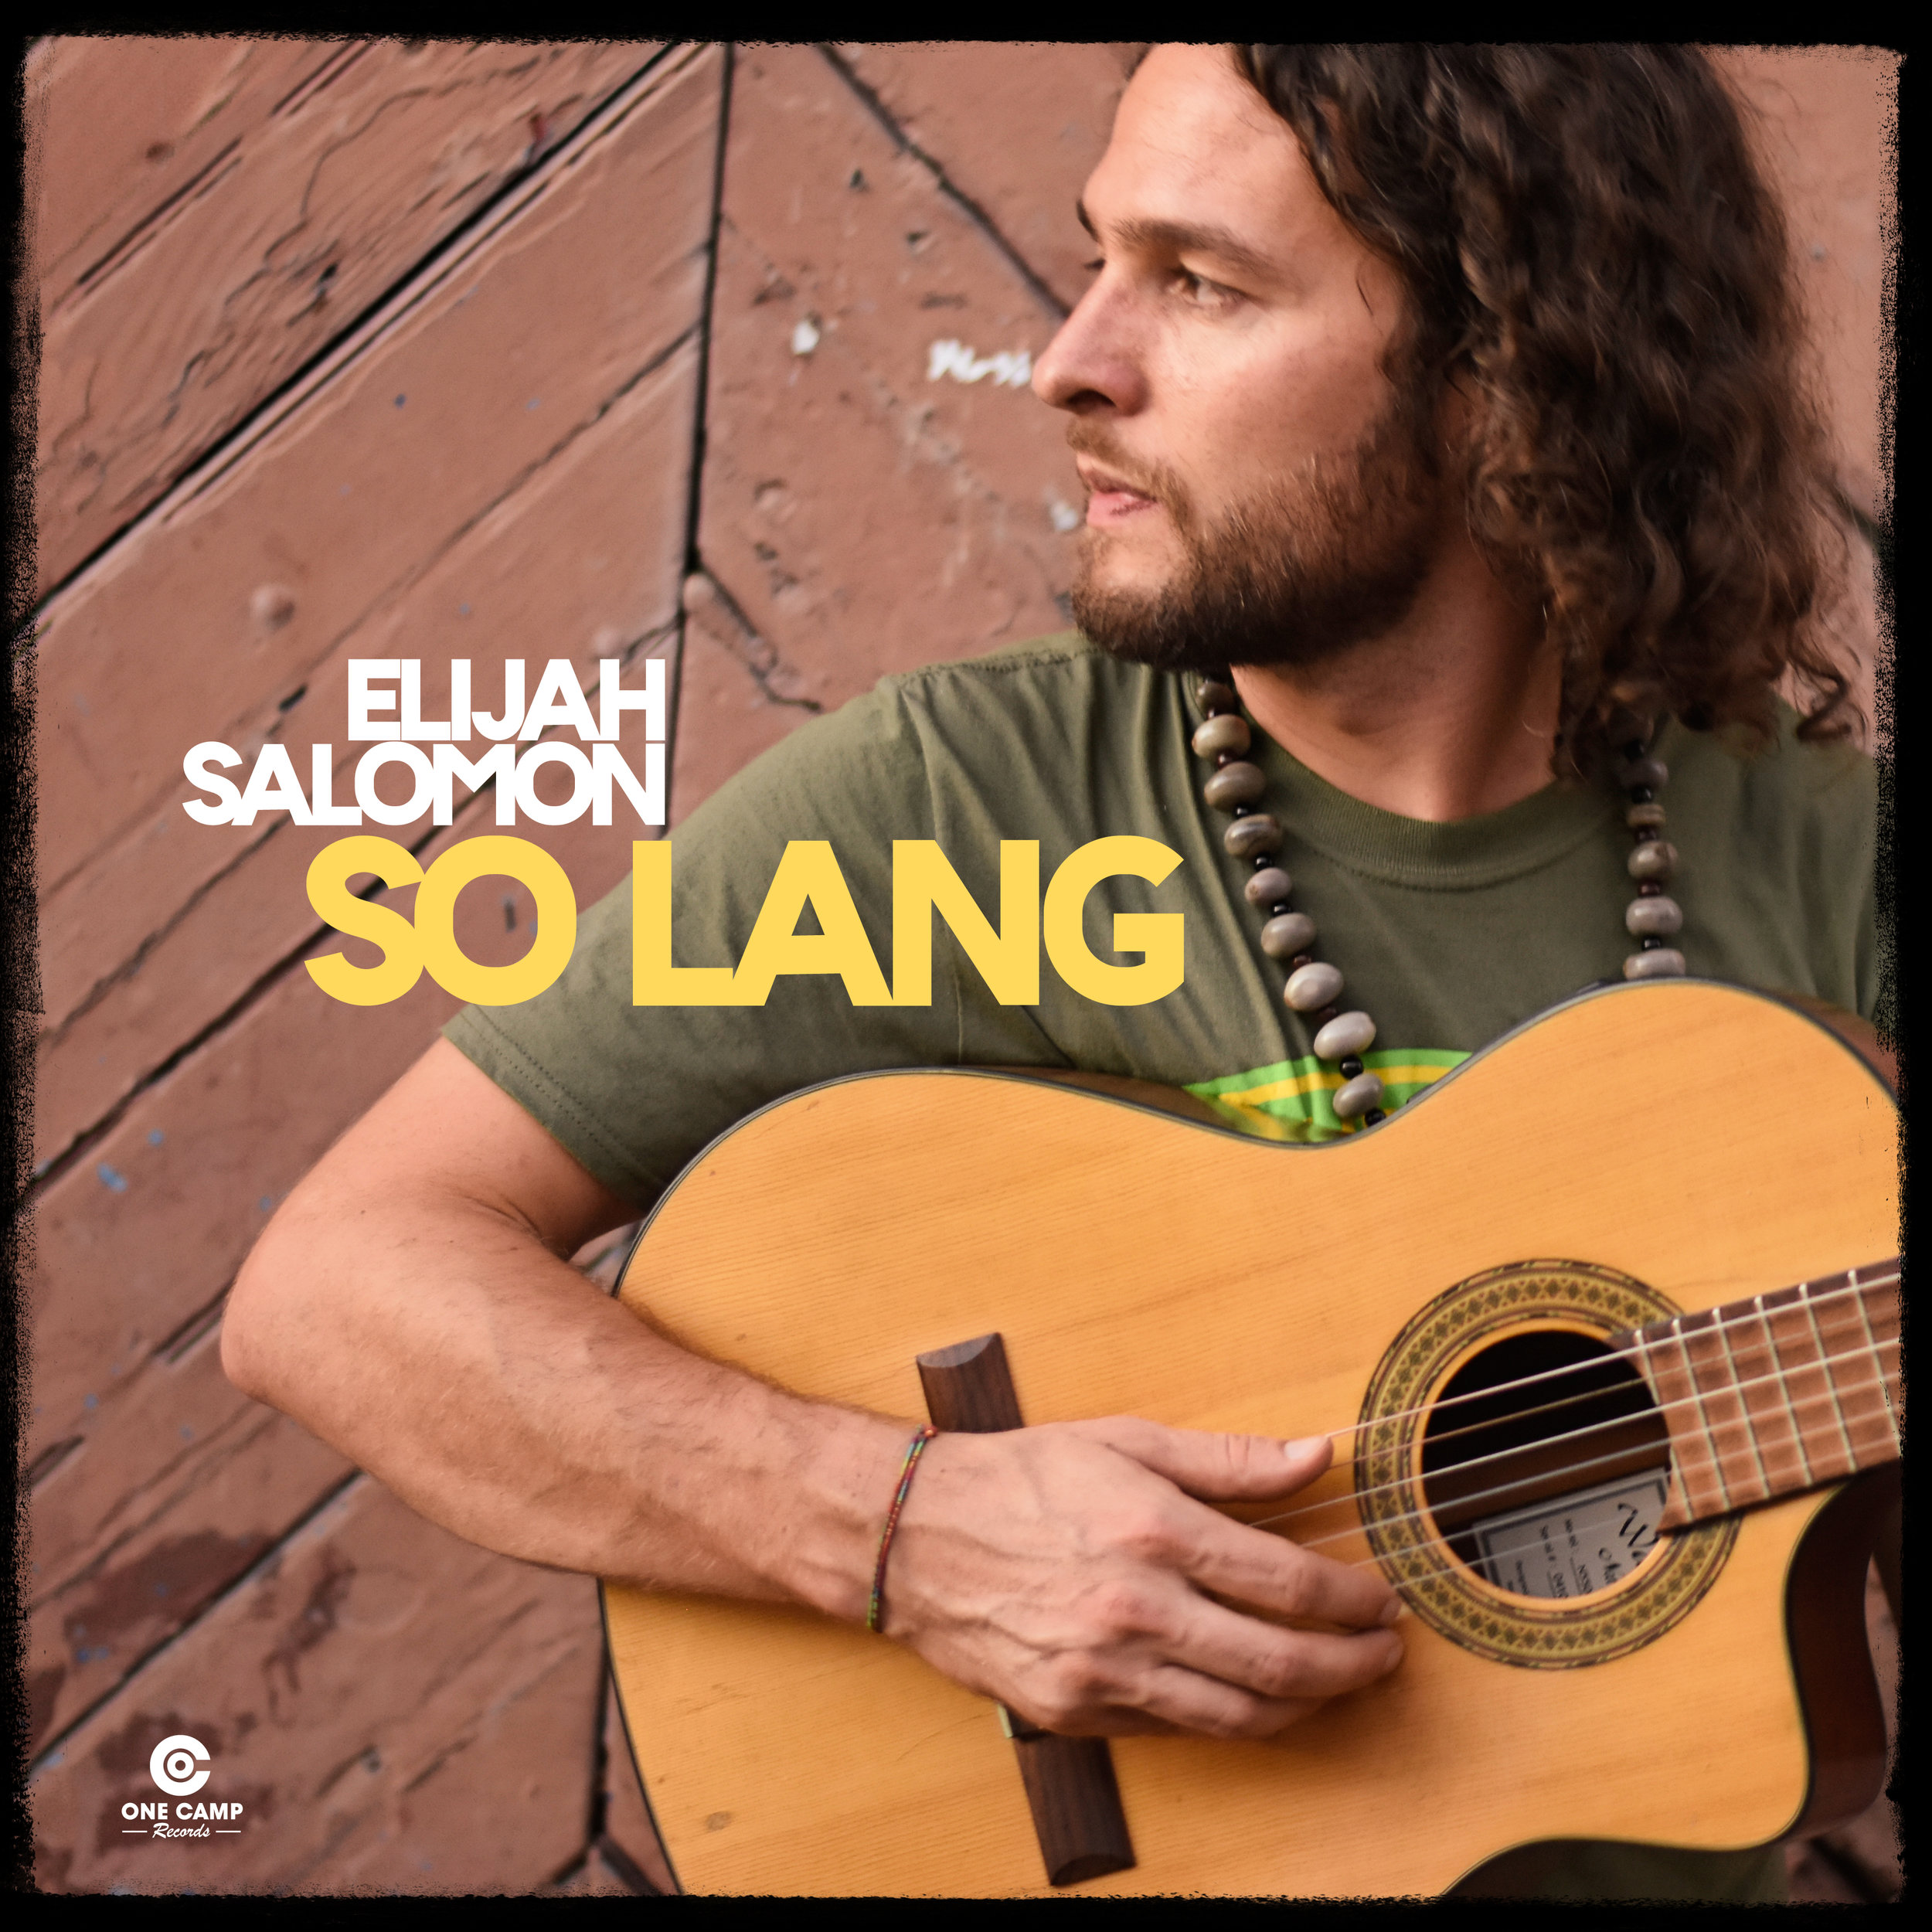 Elijah Salomon - So Lang - Cover 3700x3700px.jpg